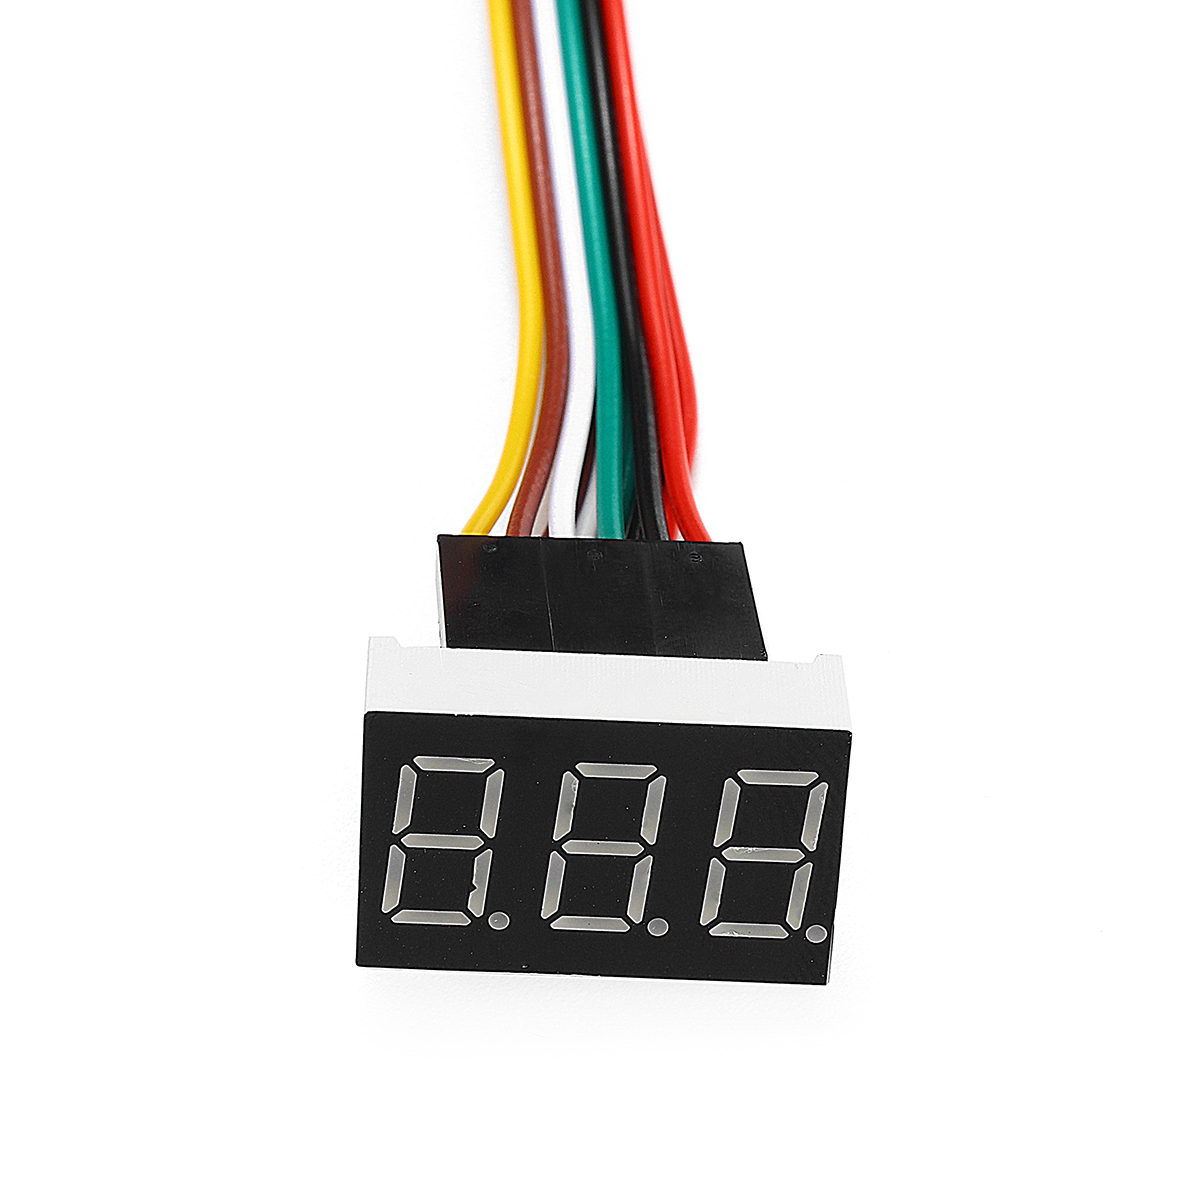 DC 10-55V 60A PWM Motor Speed Controller LED Display CW CCW Revesible Switch